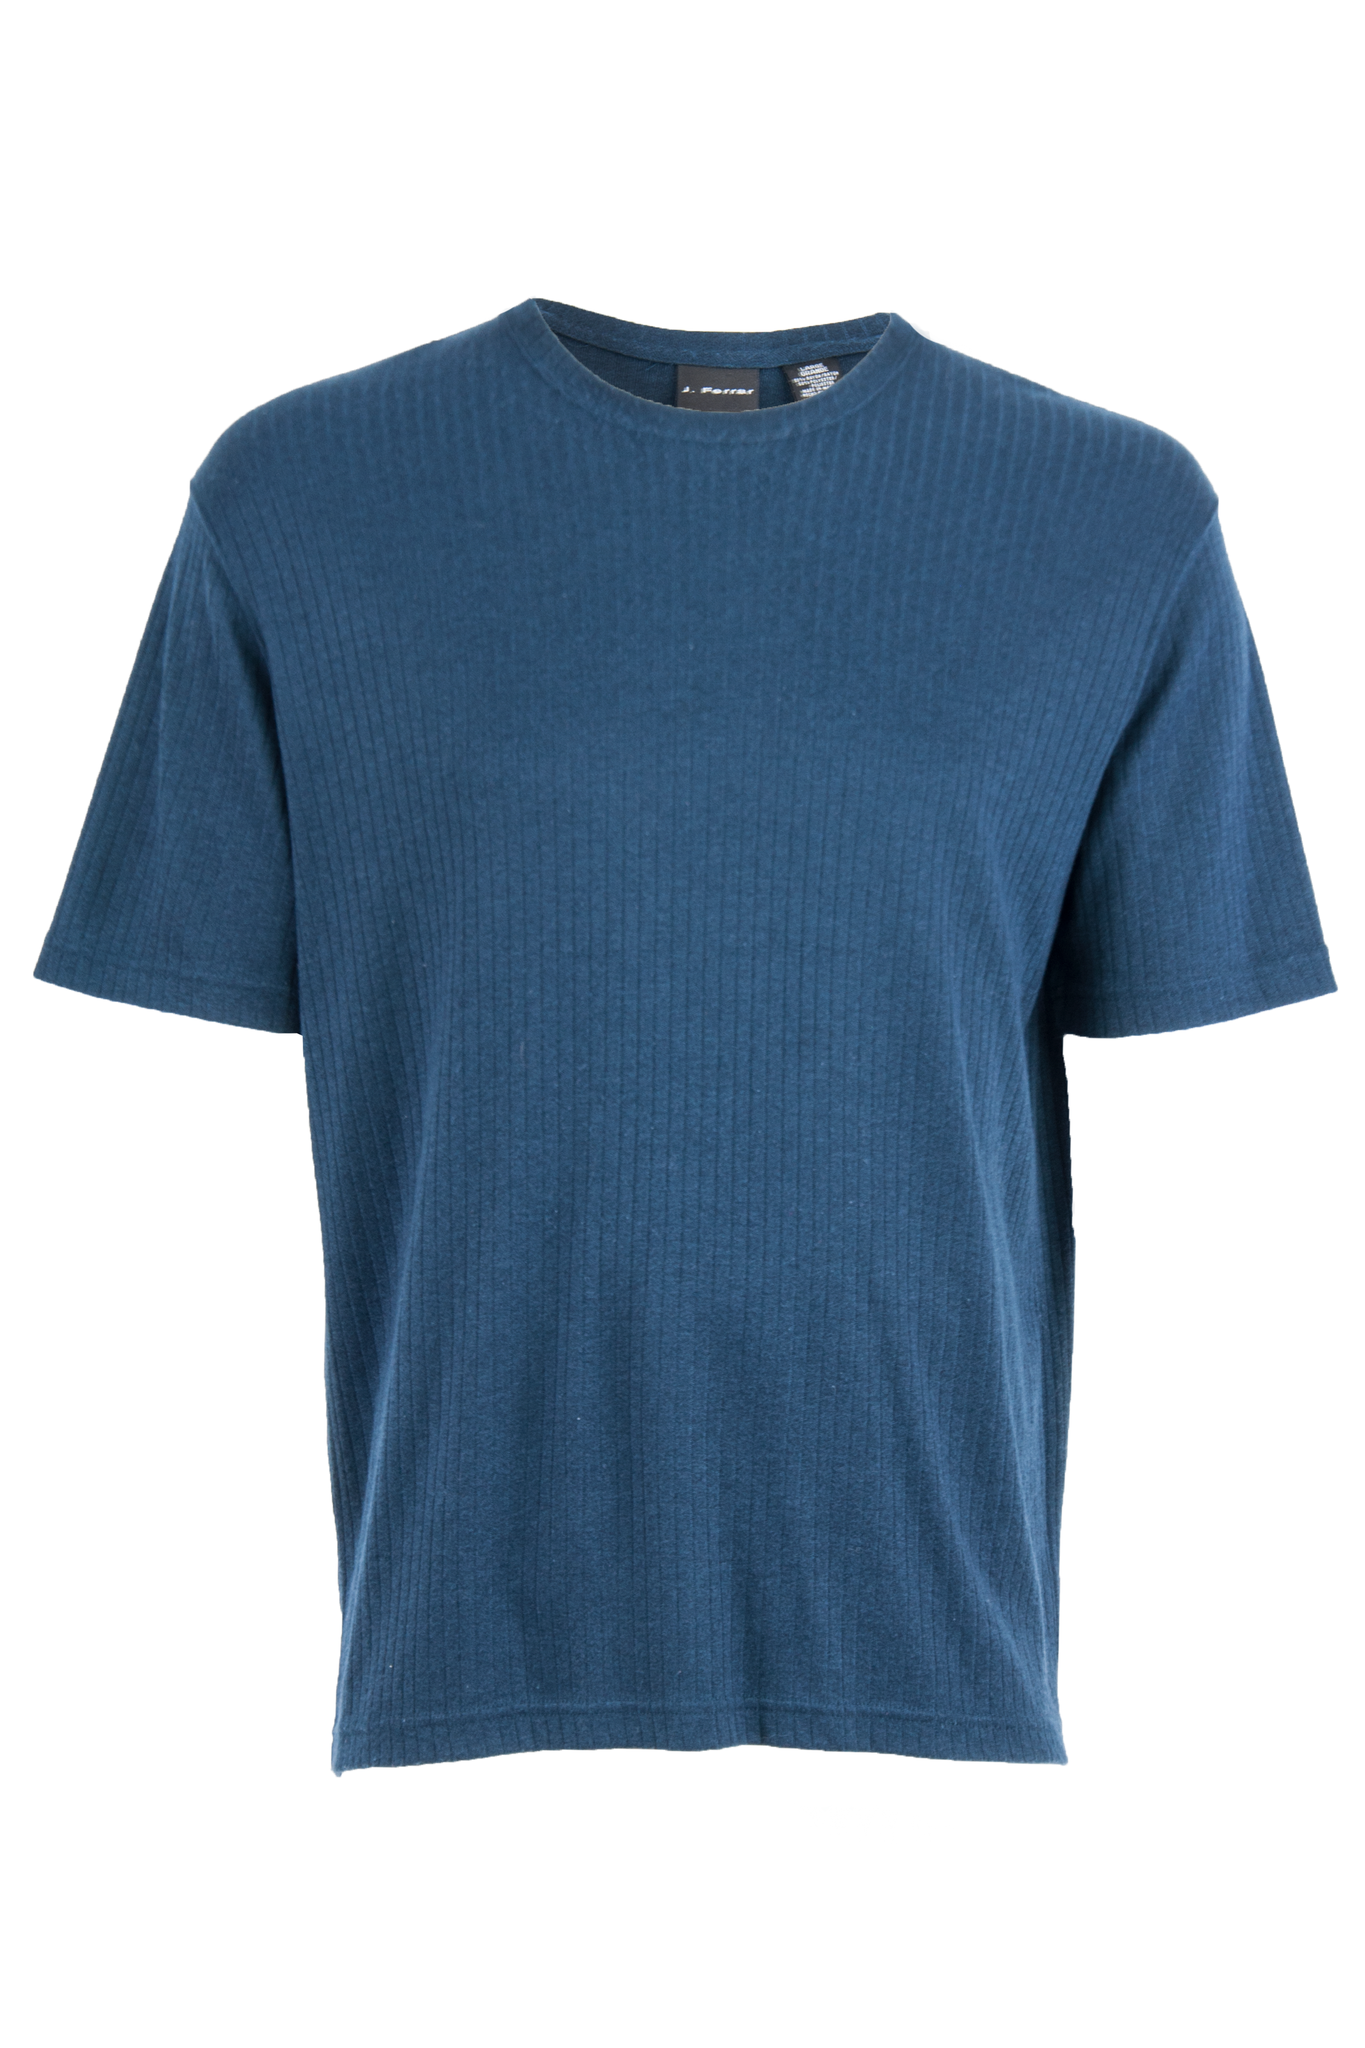 blue t-shirt with ribbing and crewneck